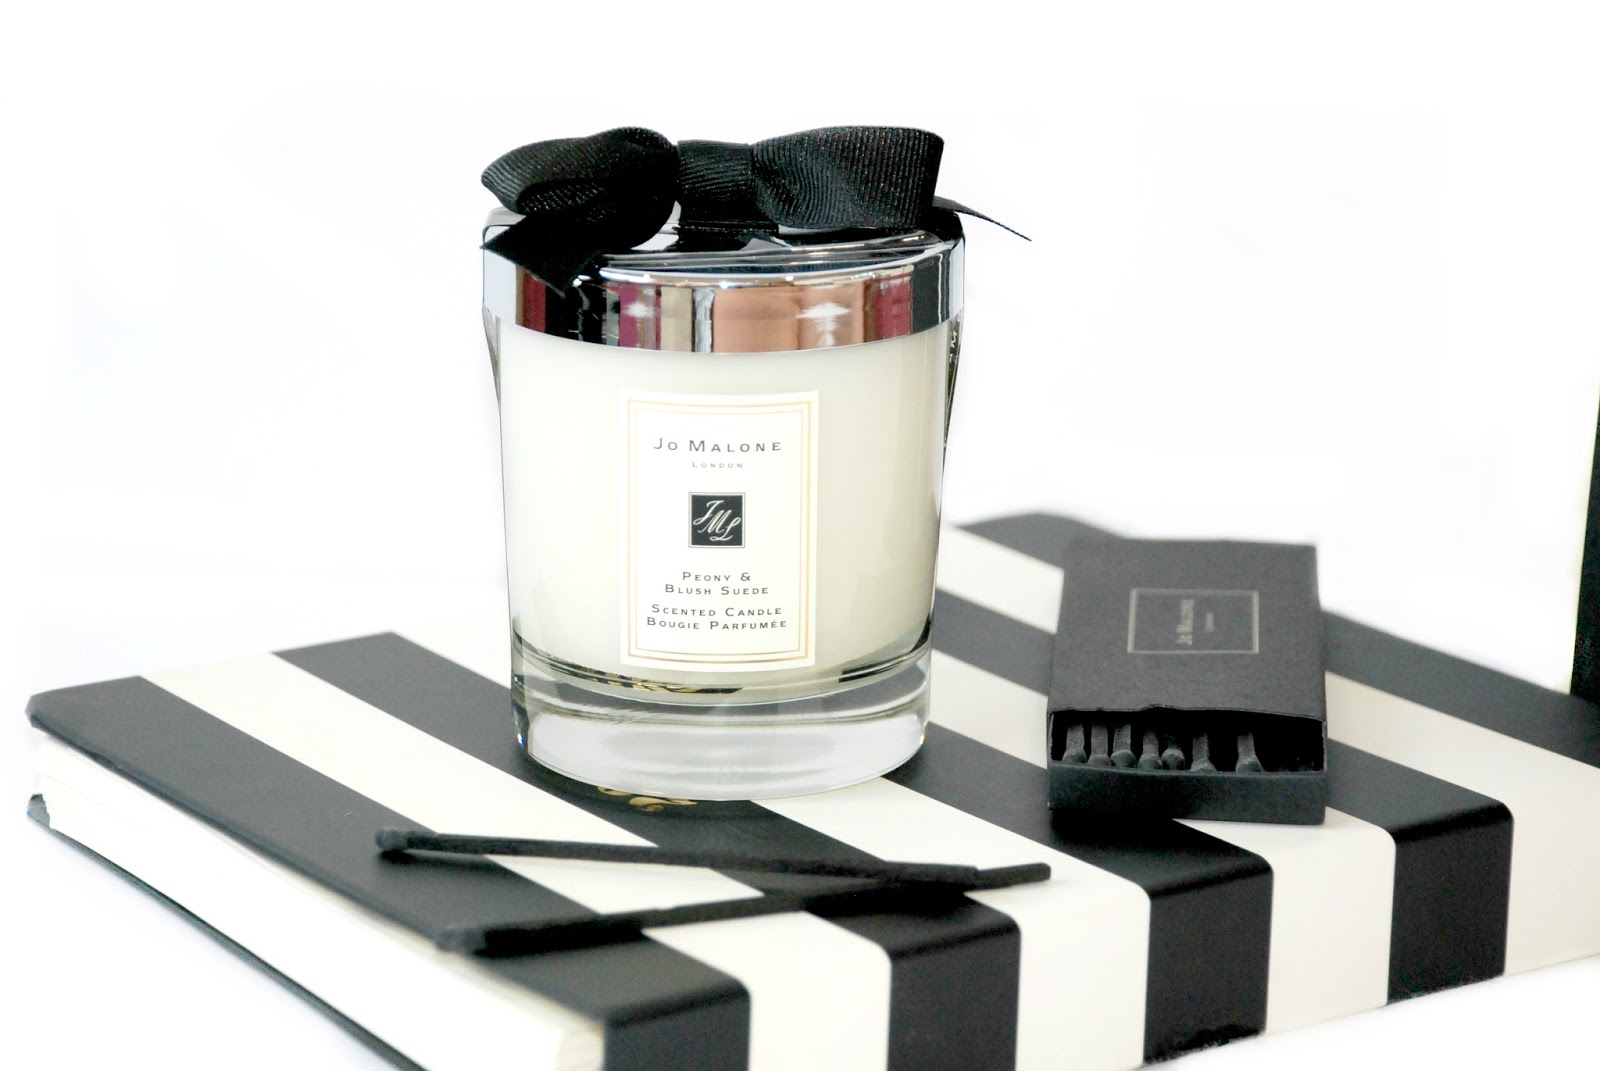 Jo Malone Candle peony and blush suede